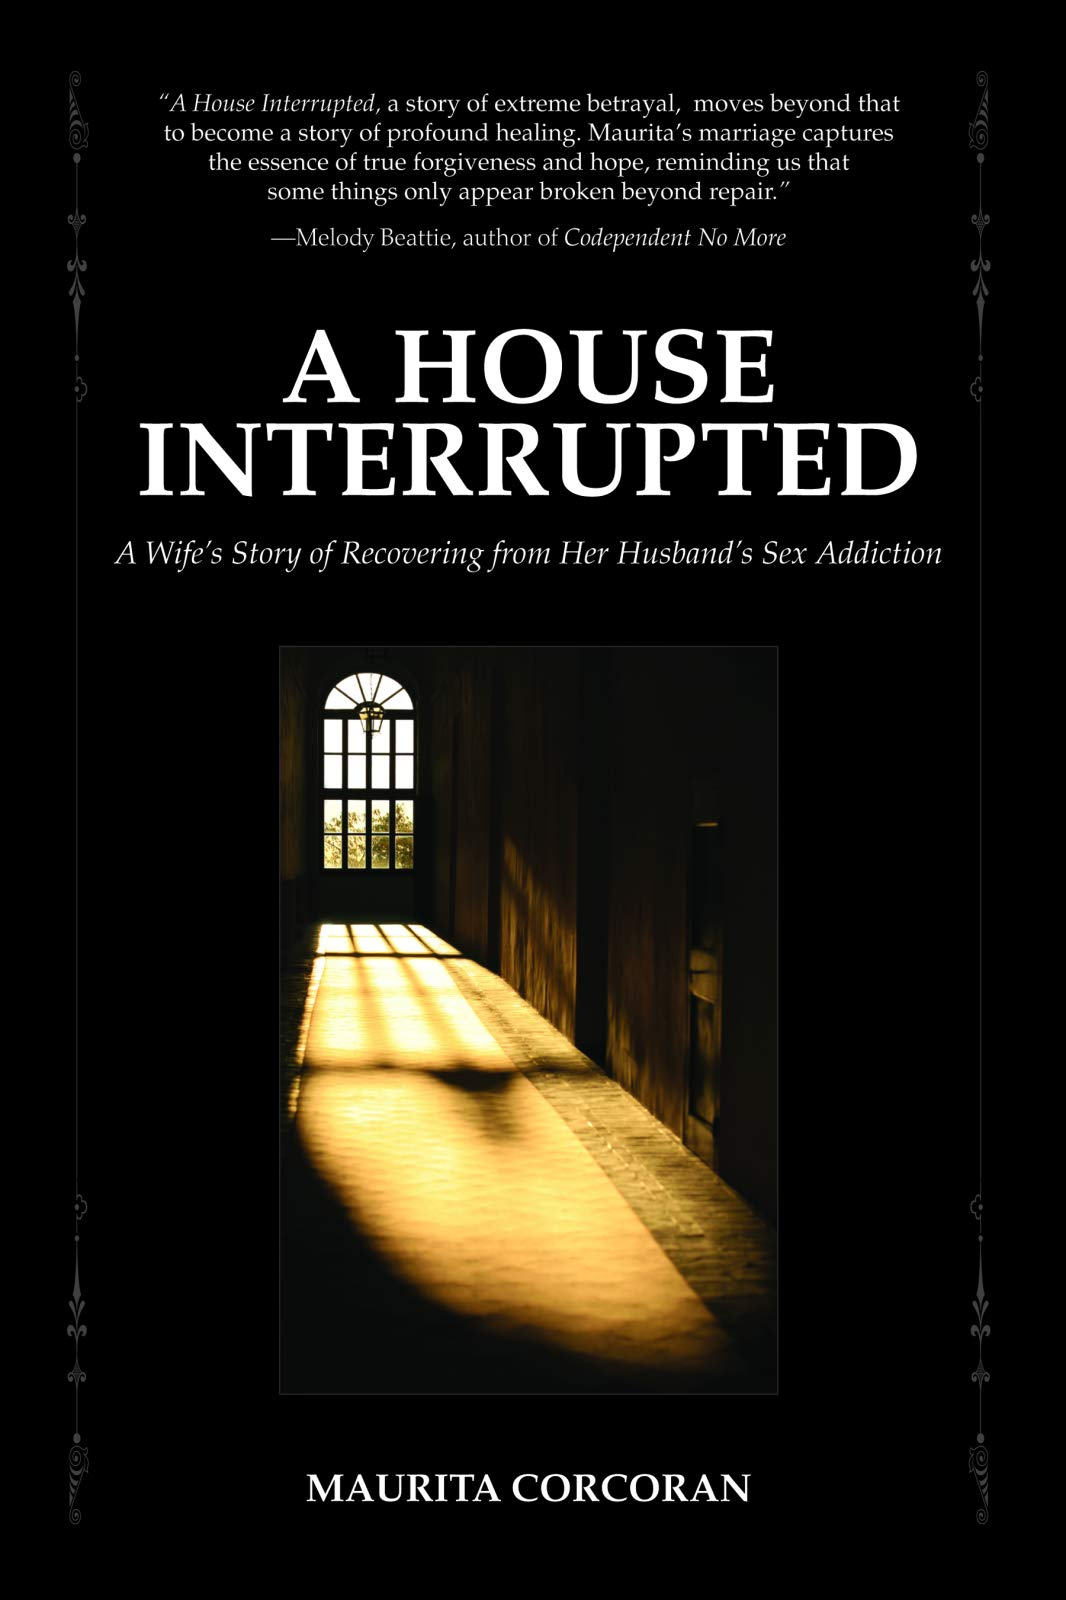 A House Interrupted: A Wife's Story of Recovering